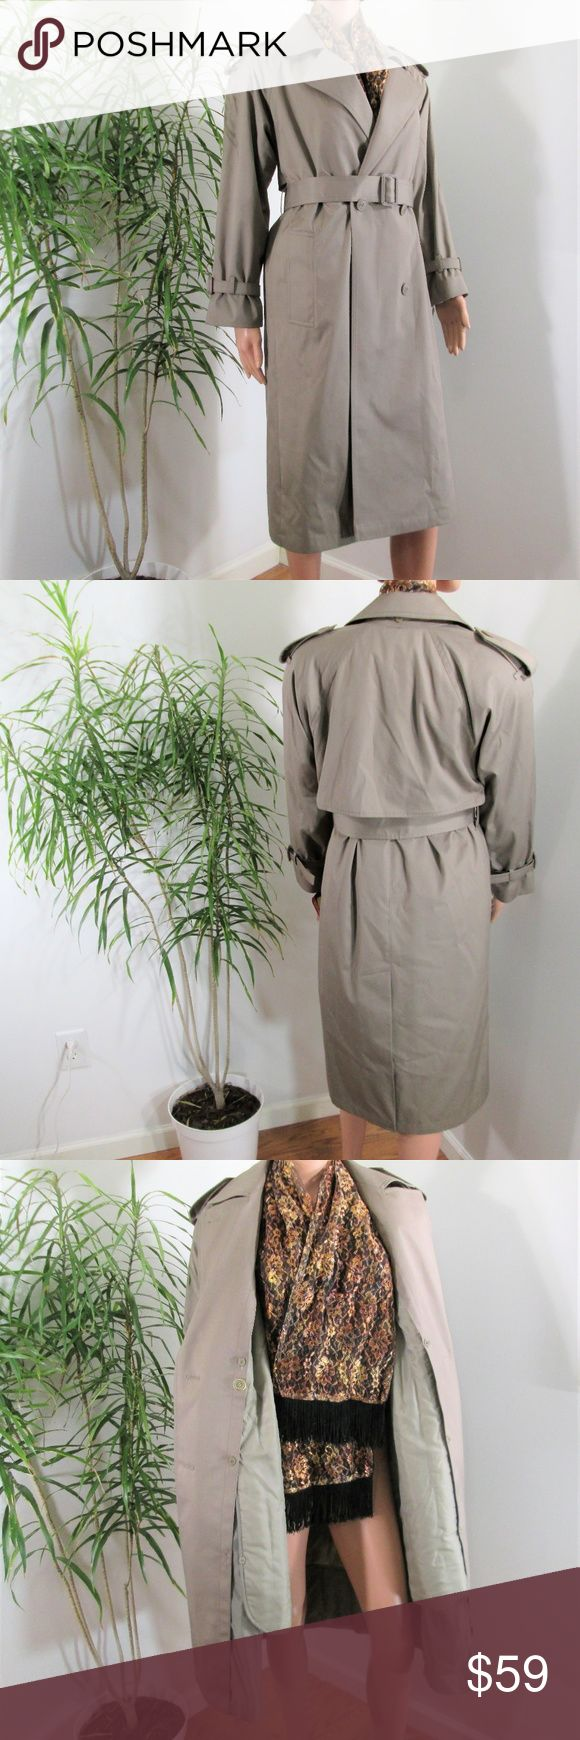 """New! Charles Klein* Classic Trench Coat Beautifully made trench with  button out insulated liner. Double breasted, belted, 2 slash pockets. Cotton blend- see tag pic.  Tagged 2P - runs big, color tag is Pewter.  Measured flat. 20"""" pit to pit. 42"""" long. liner is 34"""" long.  on 5' 9'' model. 33'' x 24'' x 33.5'' Charles Klein Jackets & Coats Trench Coats"""